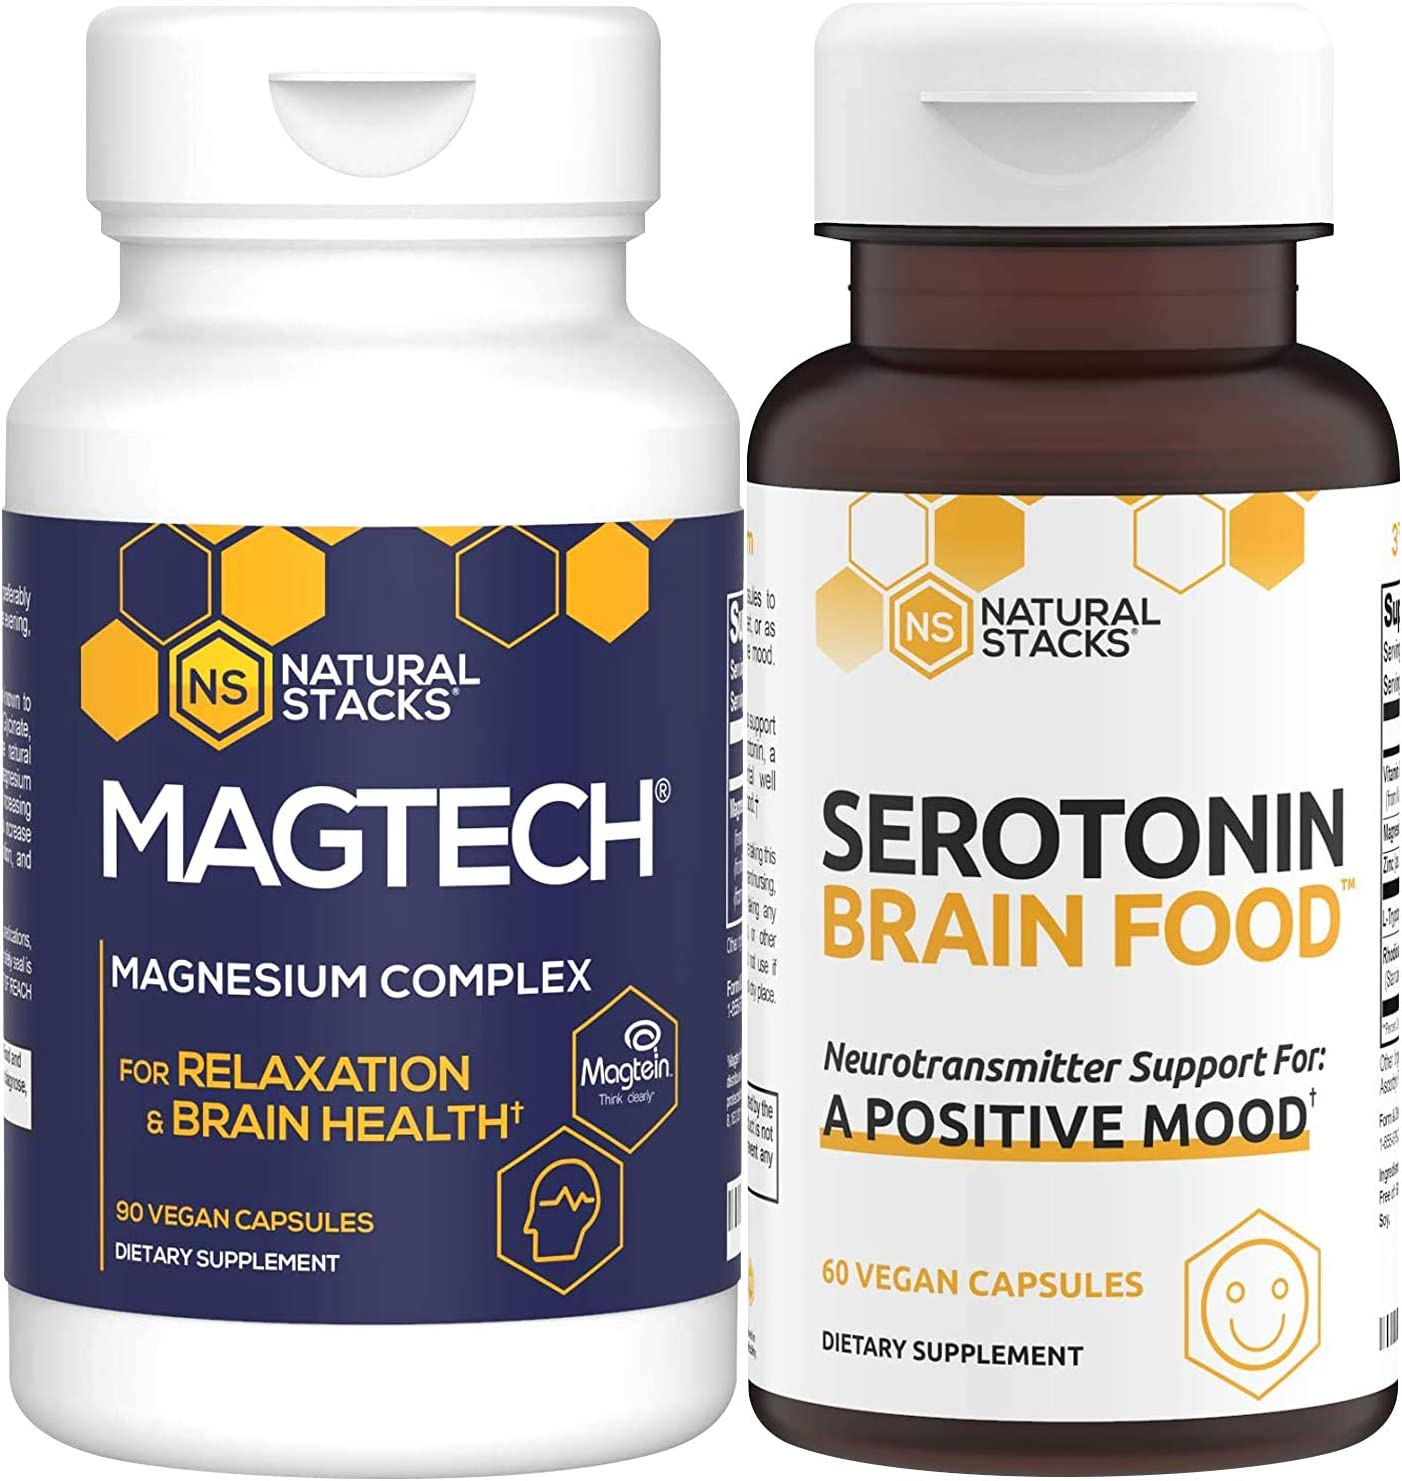 Natural Stacks Supplements Bundle - MagTech Magnesium (90ct) and Serotonin Brain Food (60ct) - Improved Focus, Memory and Motivation, Better Mood and Relaxation